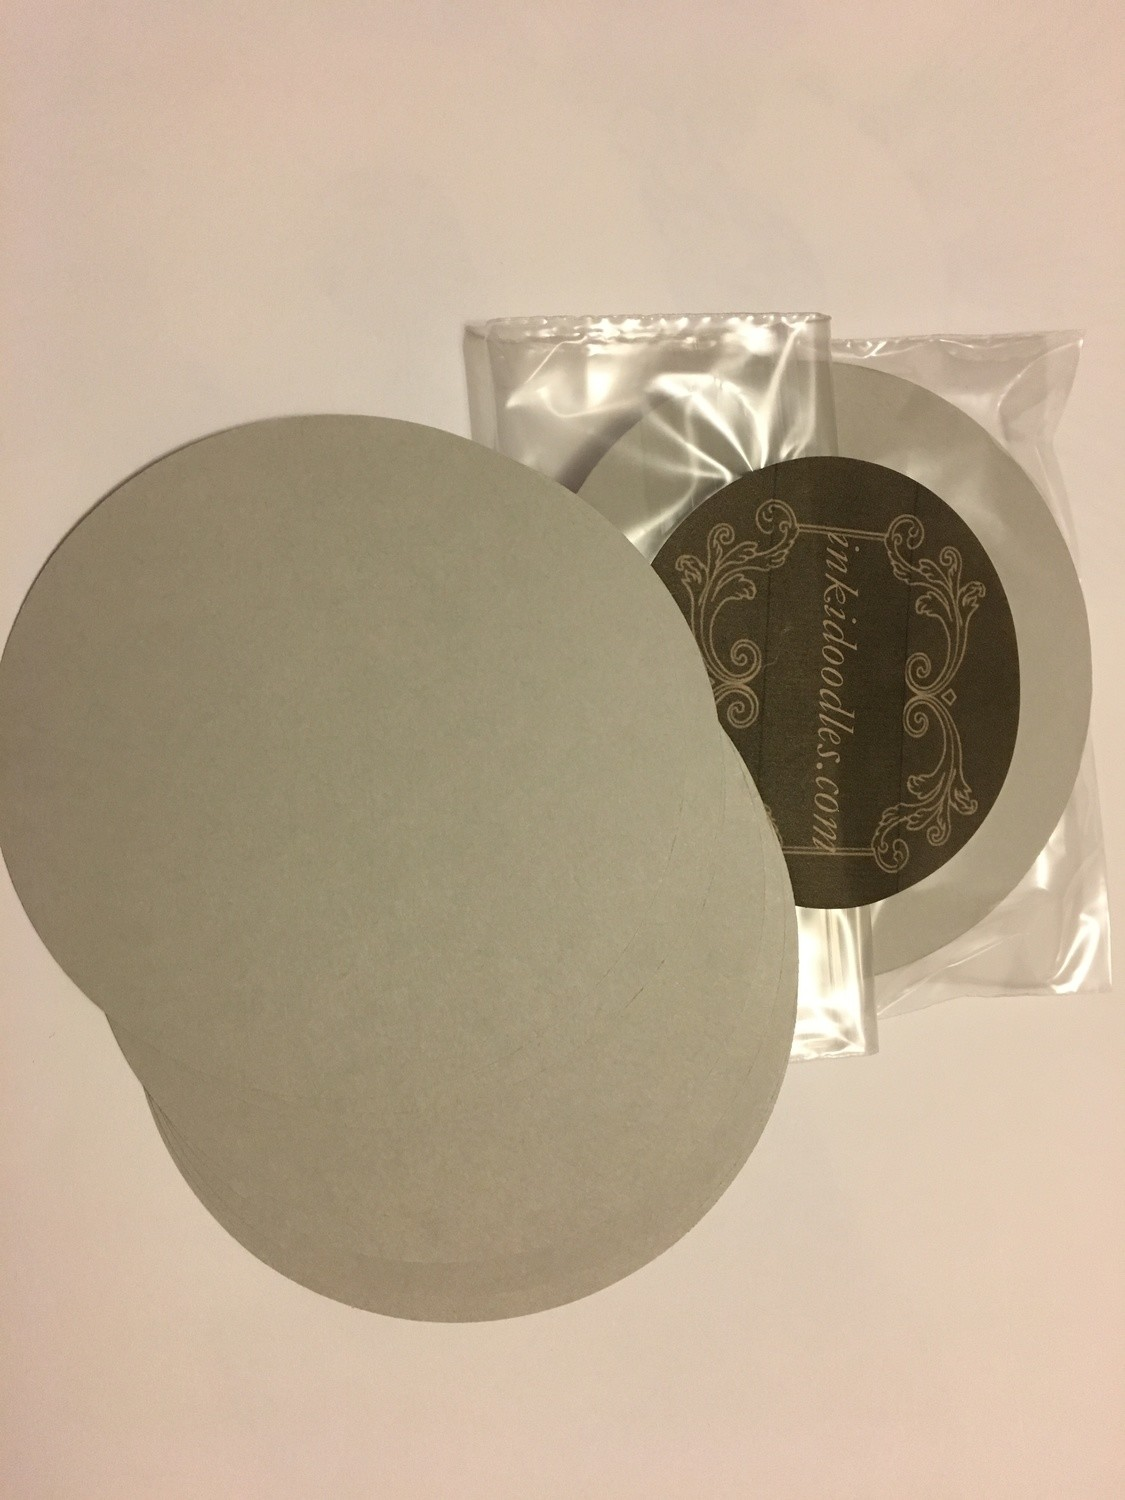 "30- 3 1/2"" round Gray tiles 65# smooth finish paper"